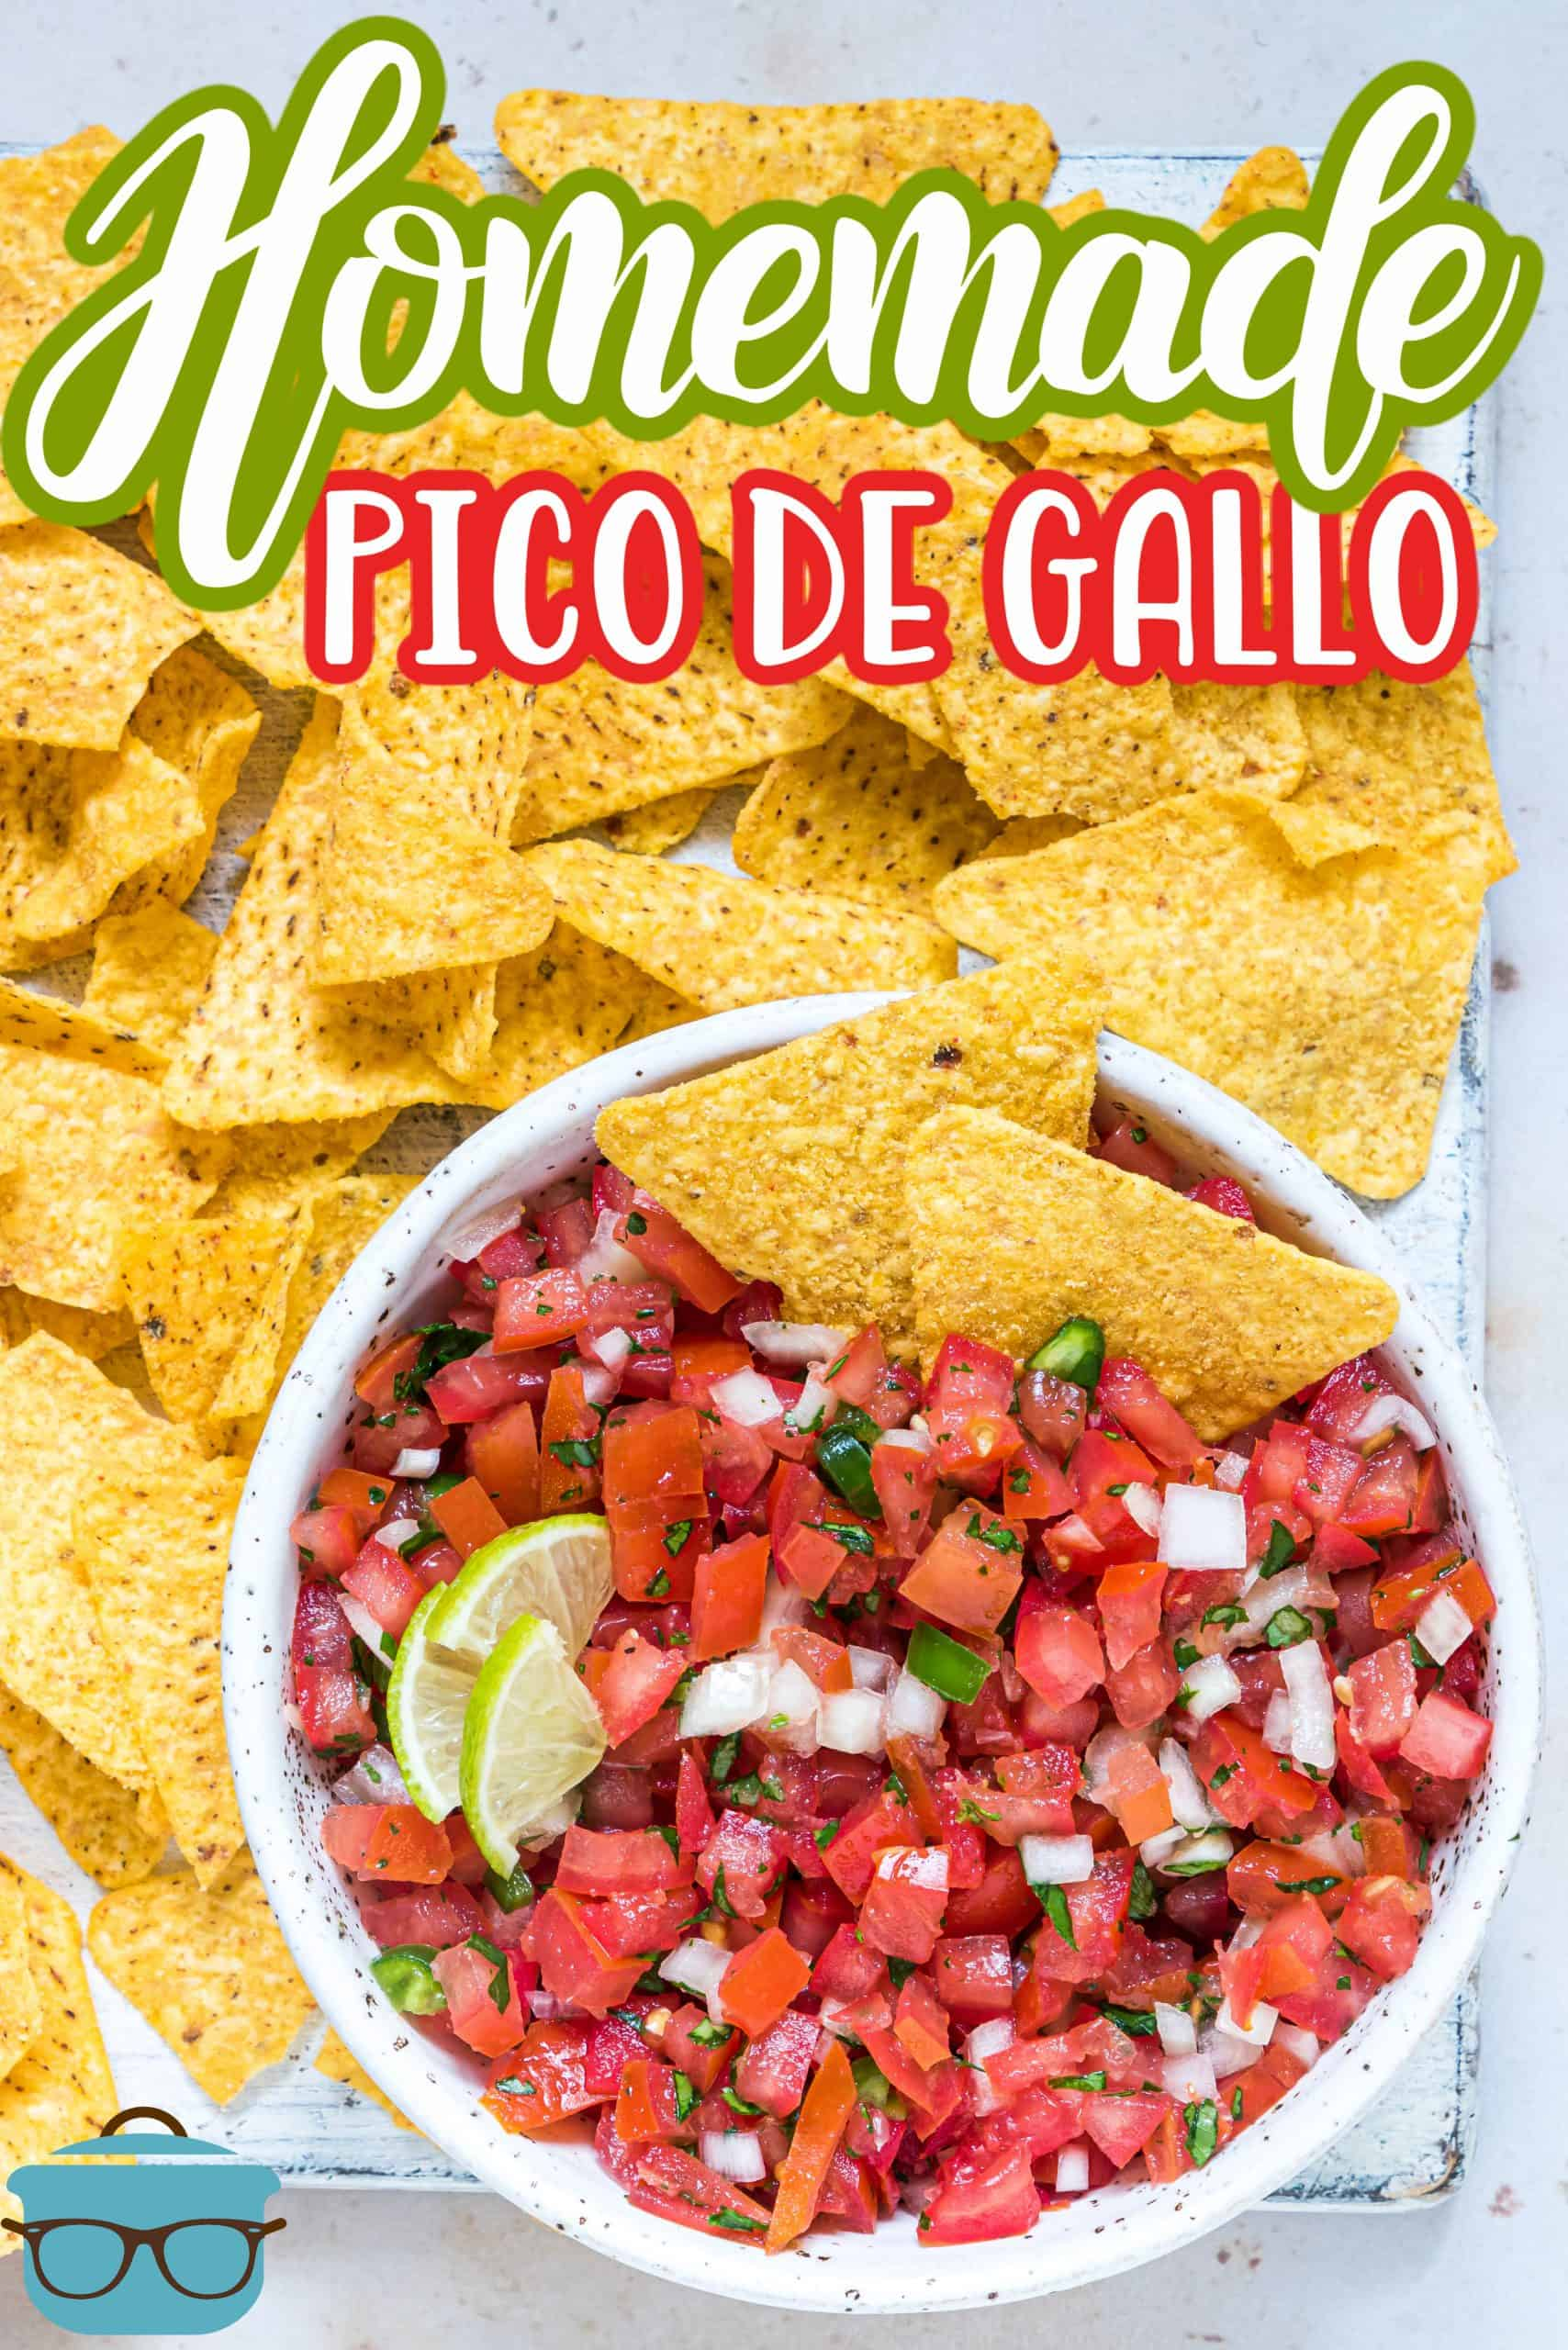 With just a few fresh ingredients, this Pico de Gallo is a breeze to put together and makes a great dip or topping for all of your favorite Mexican inspired dishes!